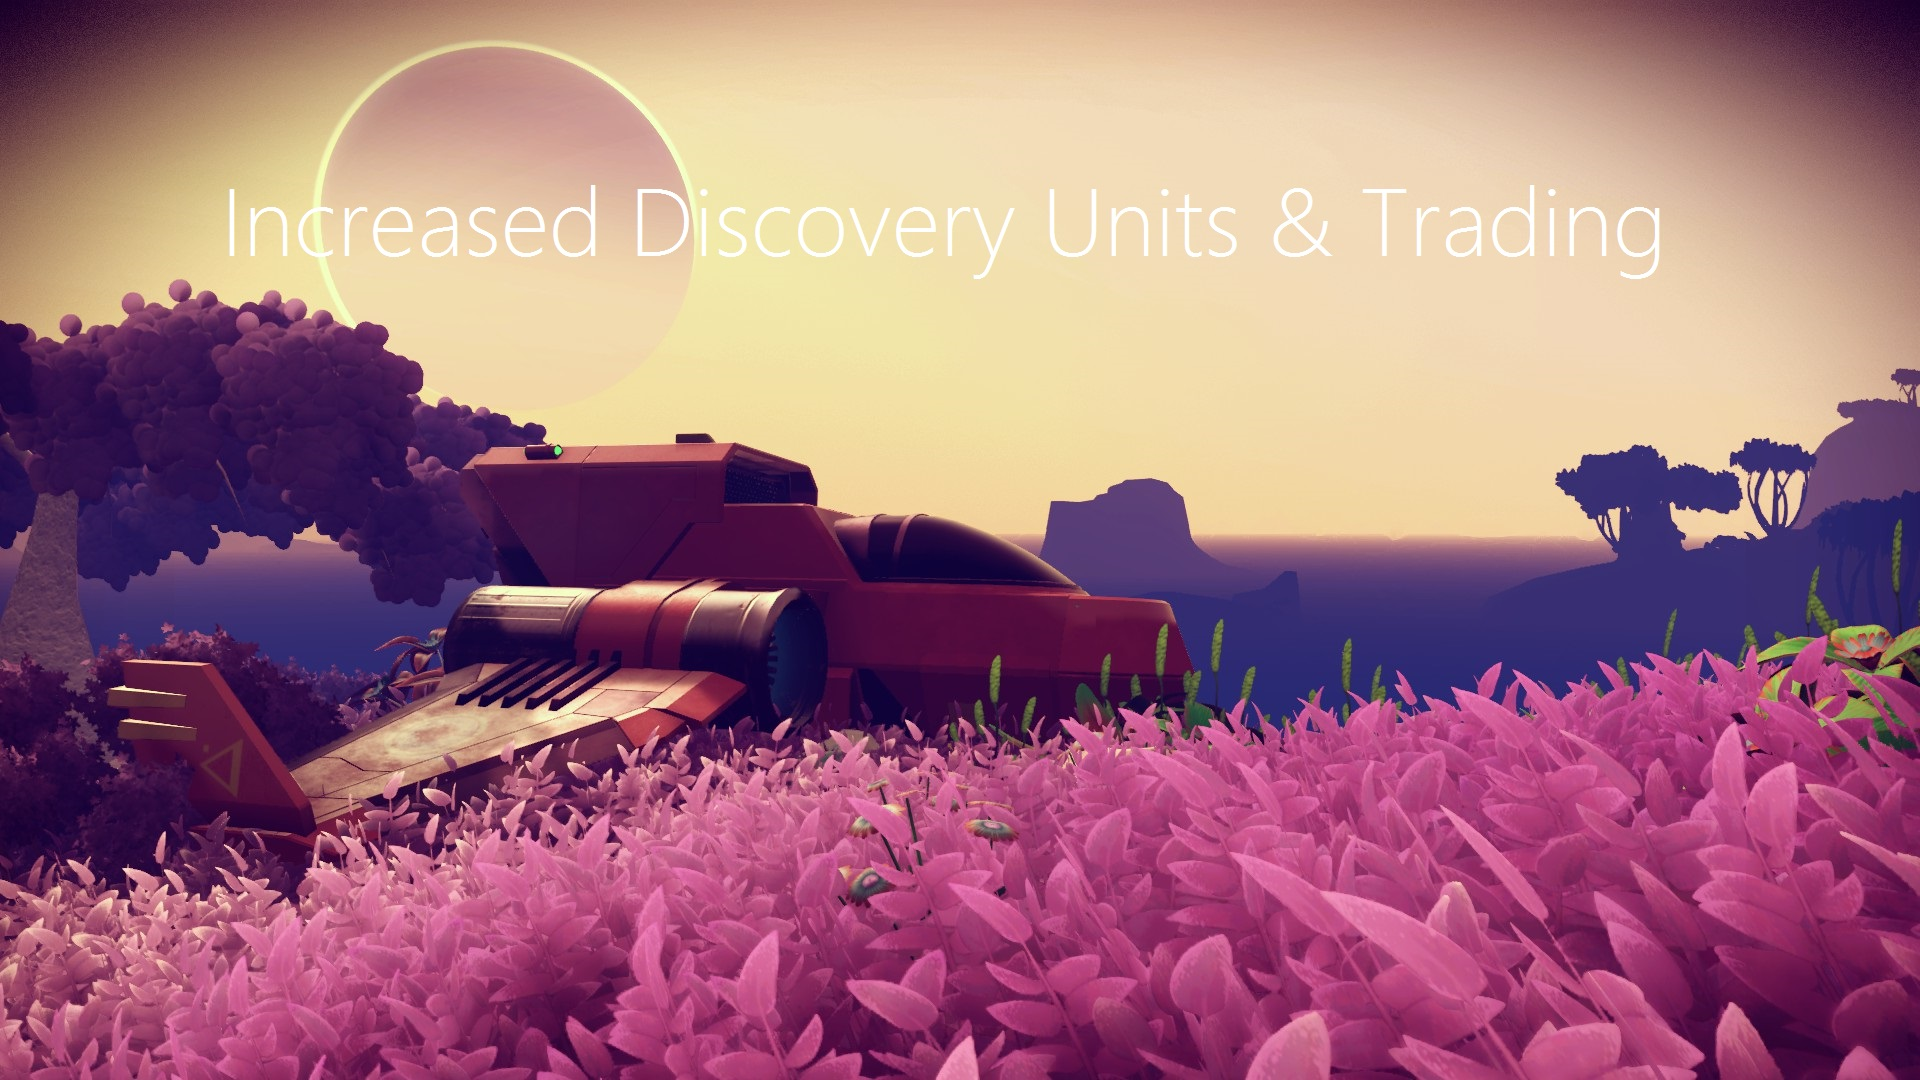 Increased Discovery Units & More Trading